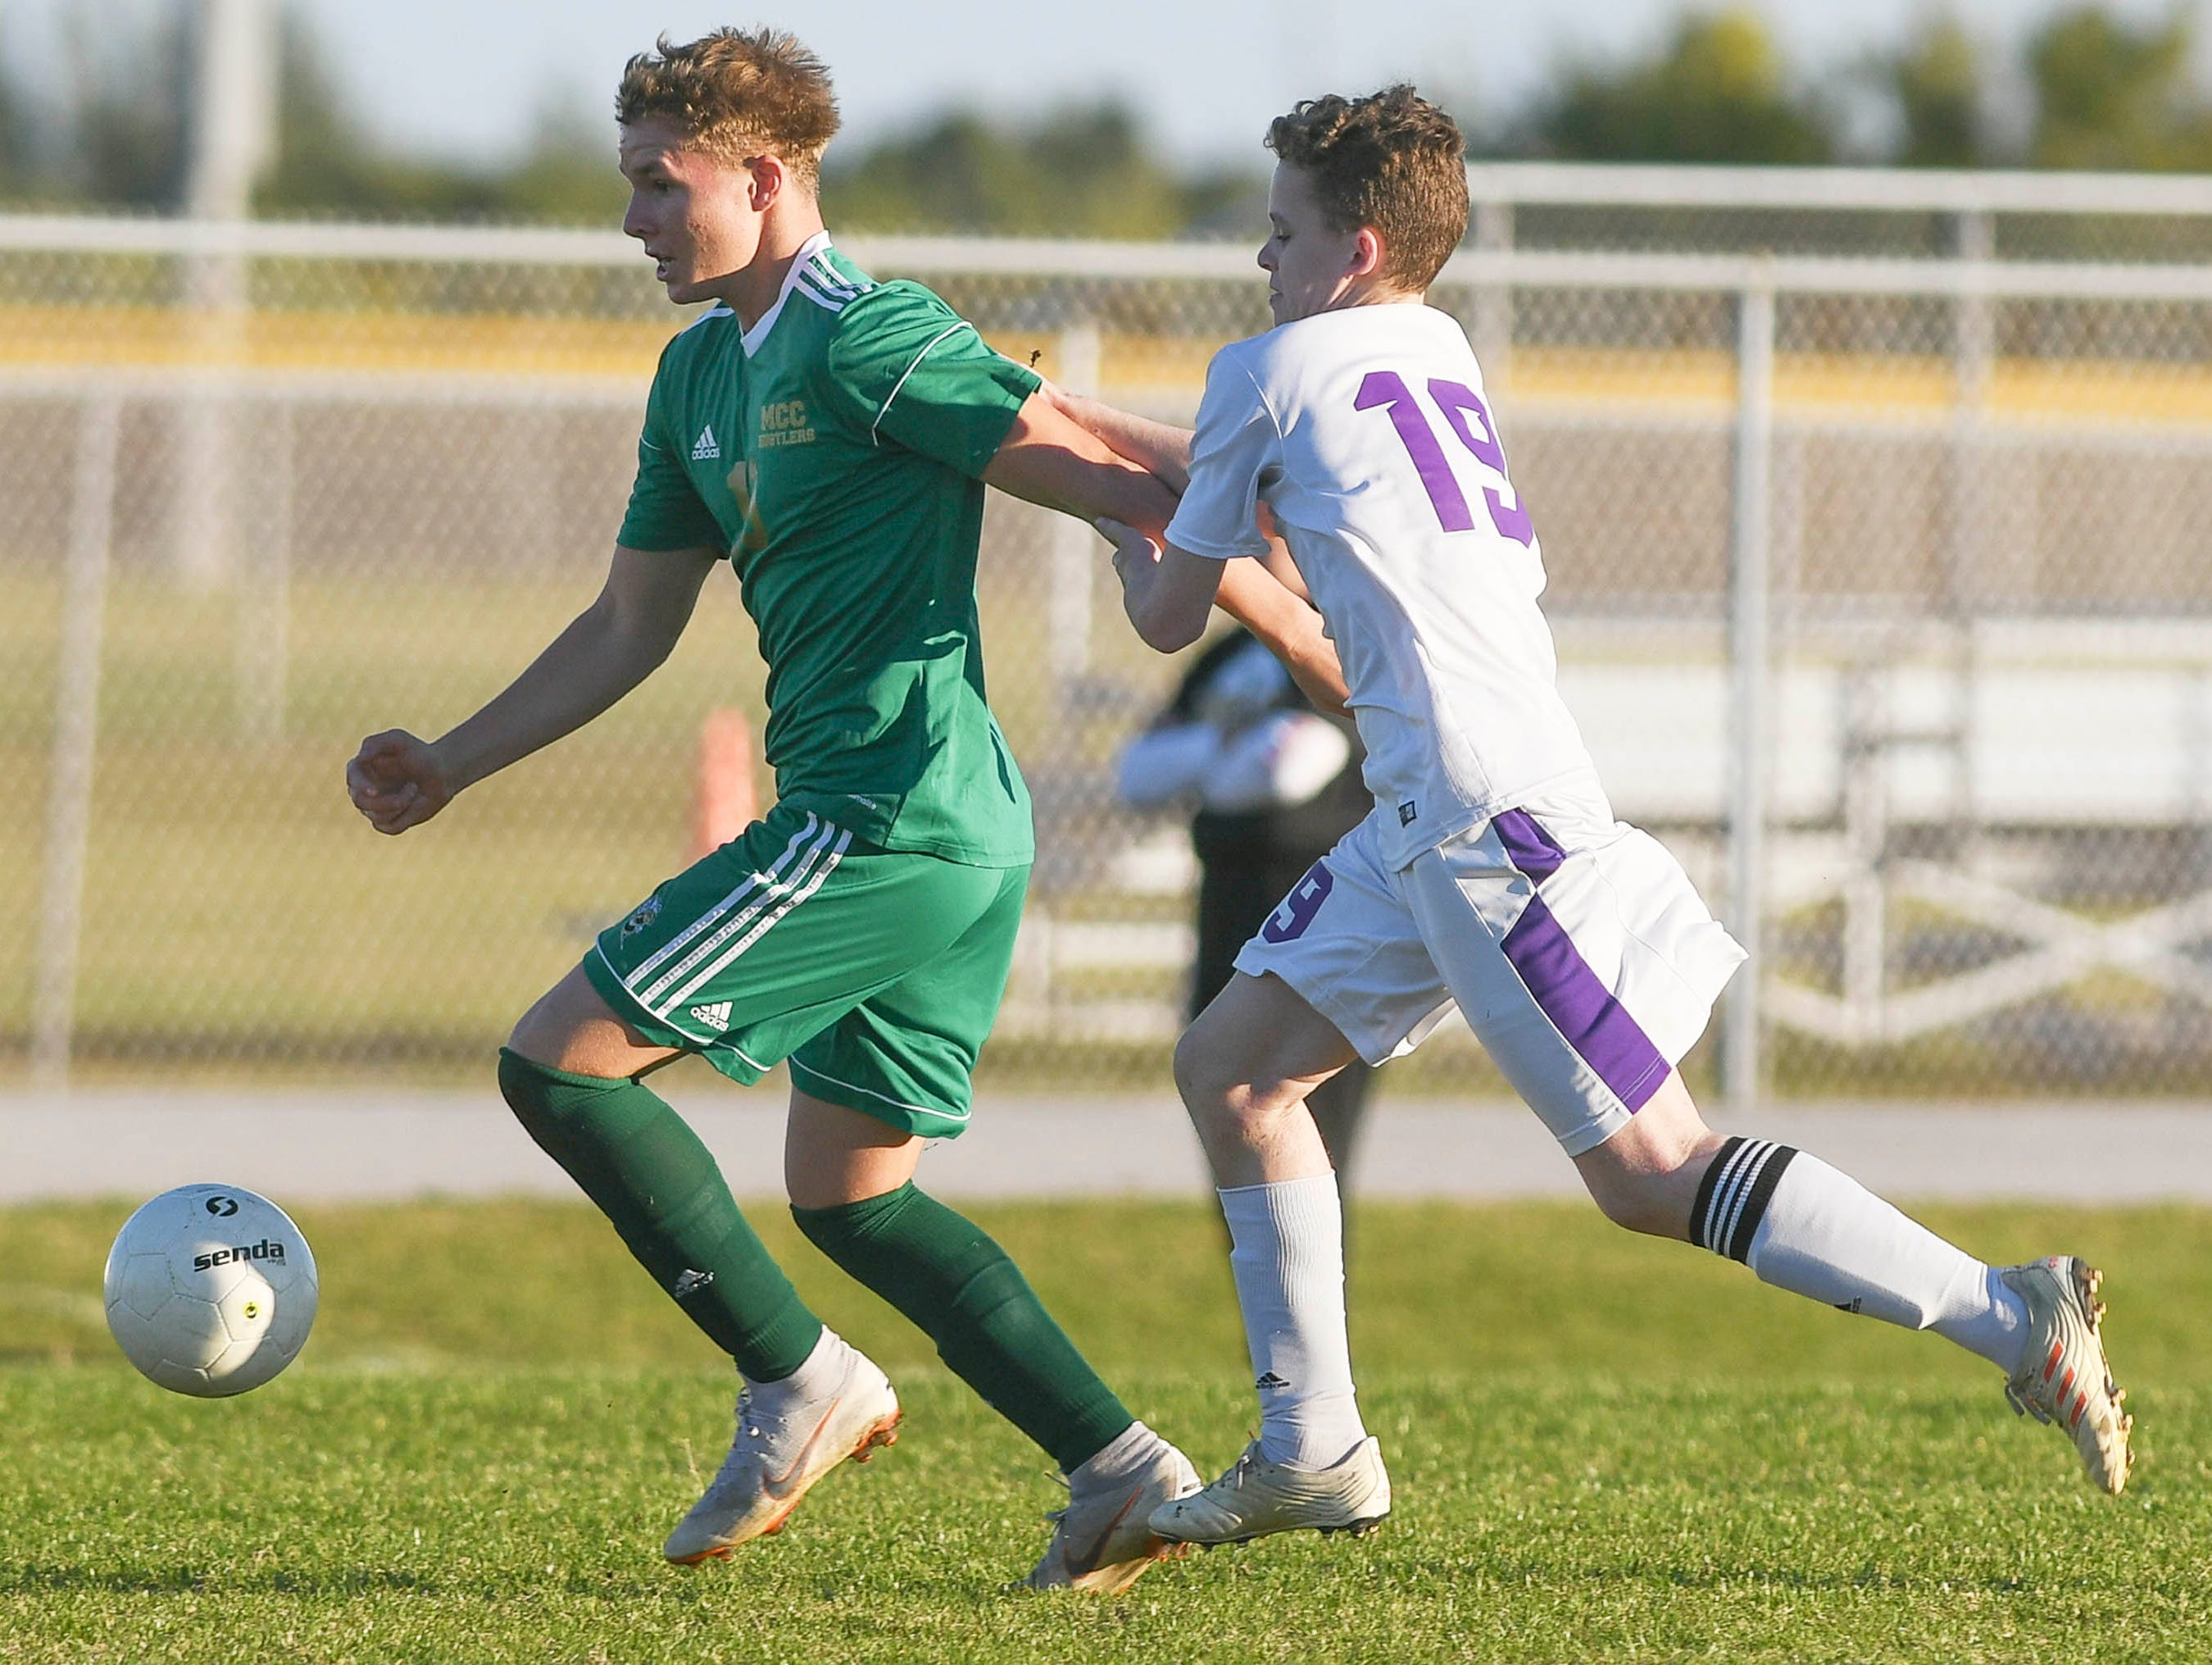 Mark Alcorn of Melbourne Central Catholic is chased by Colby Karpowich of Space Coast during Tuesday's District 8, Class 2A semifinal at Cocoa Beach High.